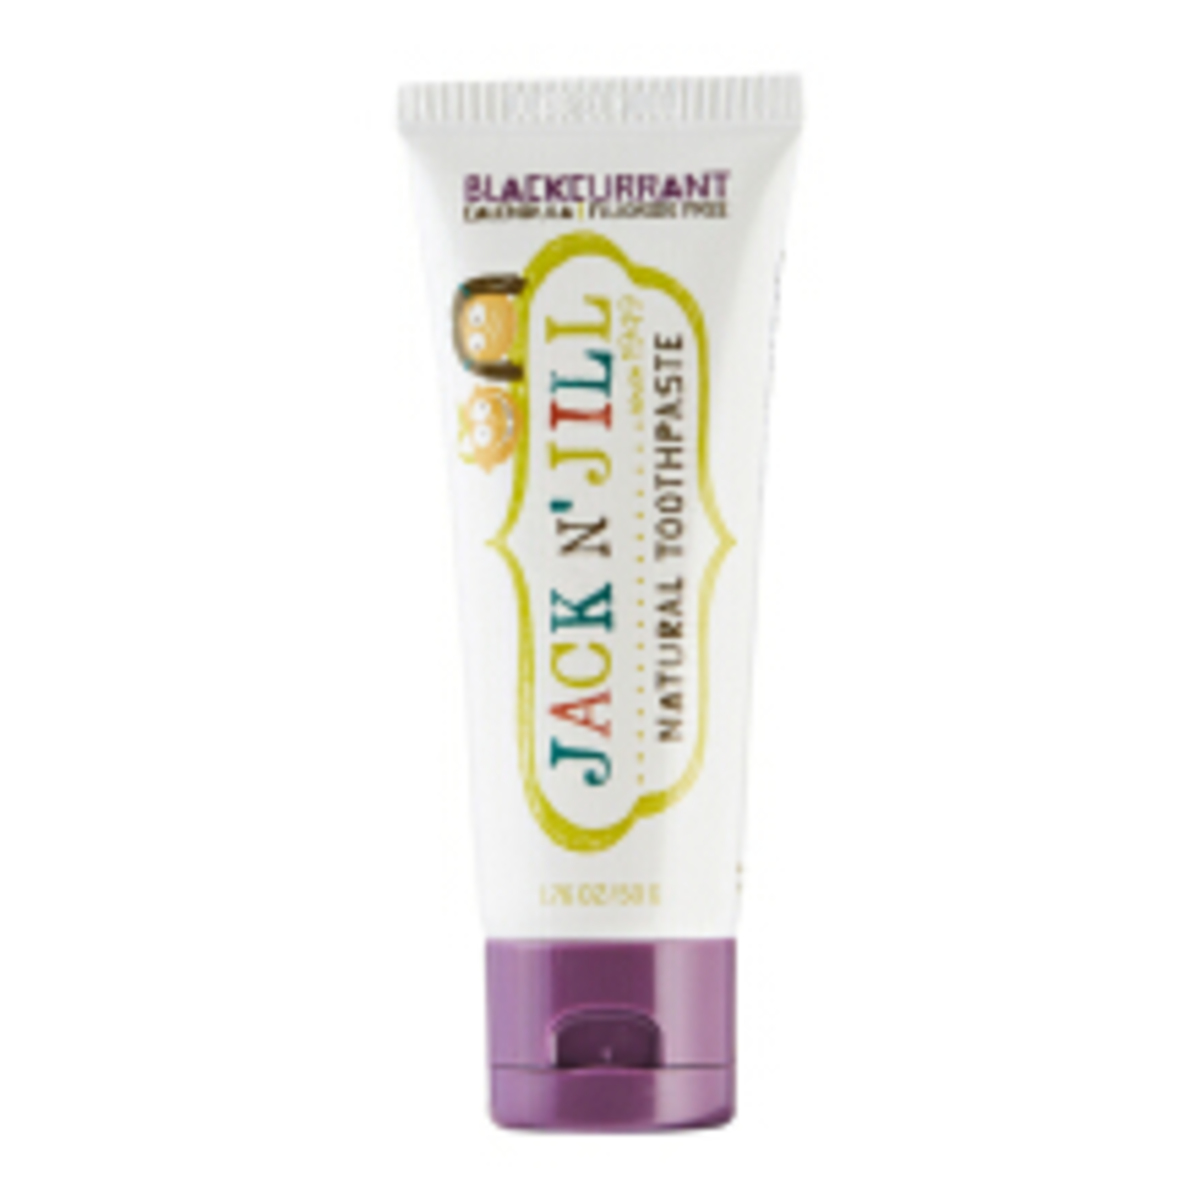 Jack n' Jill - Natural Organic Children's Toothpaste  (Blackcurrant) 50g